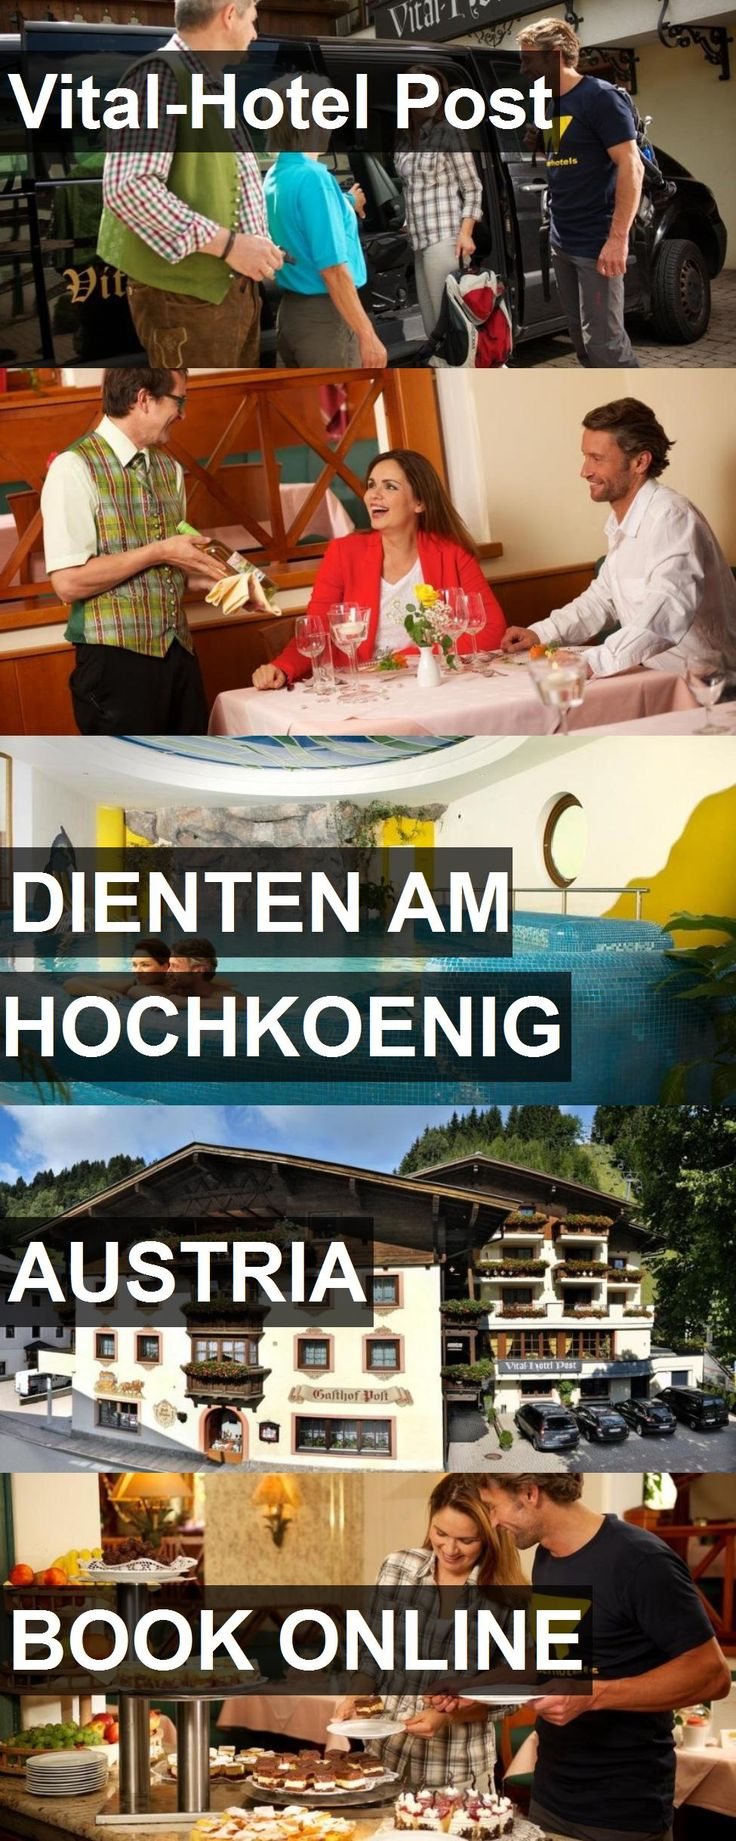 Vital-Hotel Post in Dienten am Hochkoenig, Austria. For more information, photos, reviews and best prices please follow the link. #Austria #DientenamHochkoenig #travel #vacation #hotel